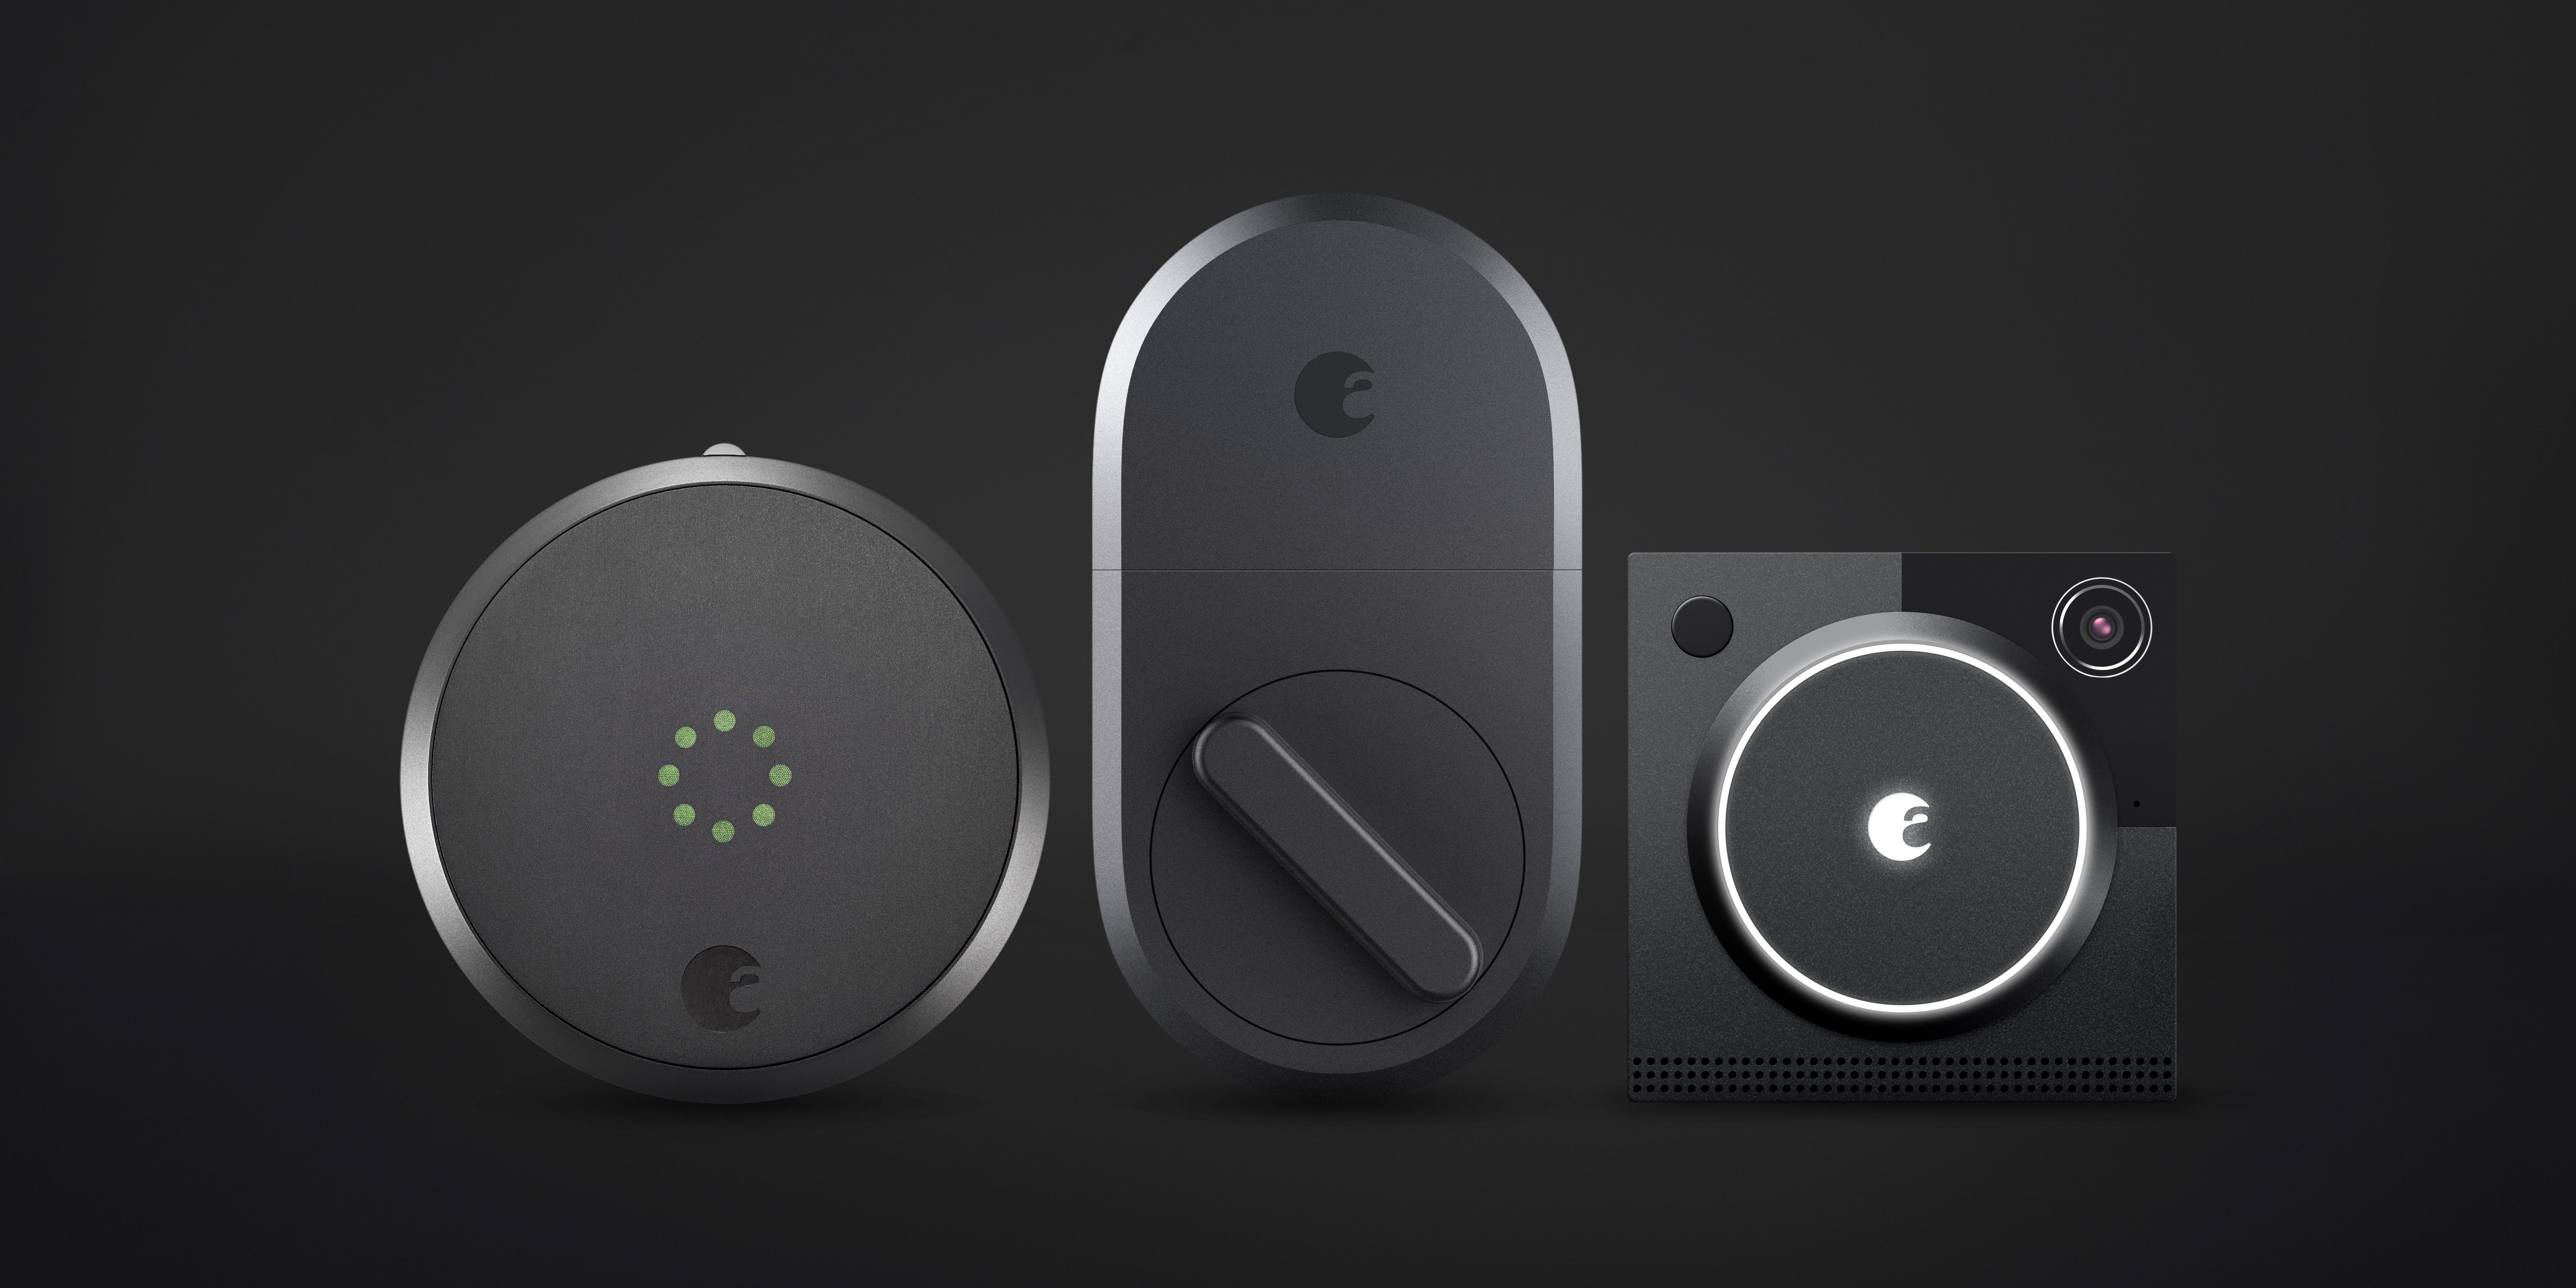 August Upgrades Smart Home Lineup With Pro Lock And